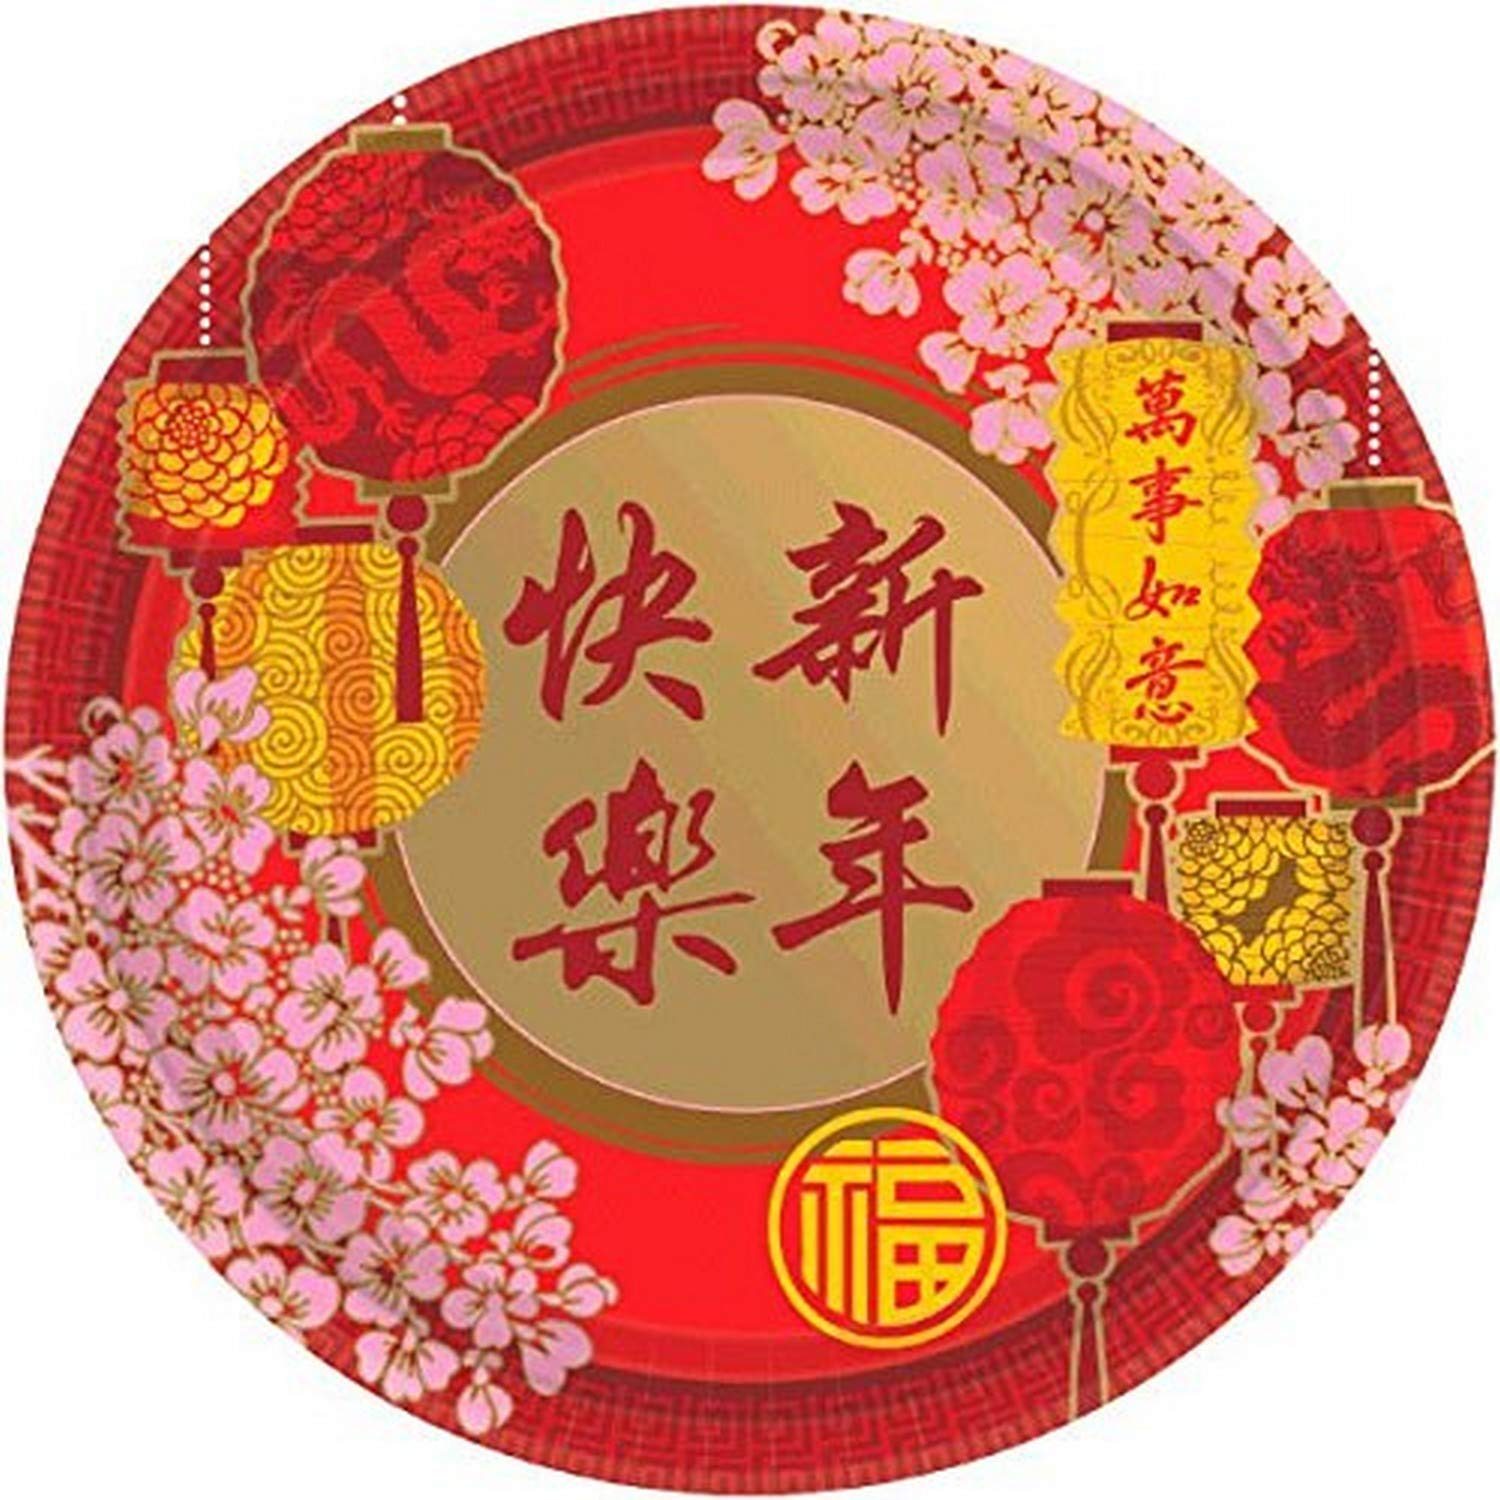 "B00HSC4EBE Amscan 591347 Chinese New Year Blessing Plates, 10 1/2"", Red 718QenwkD9L"